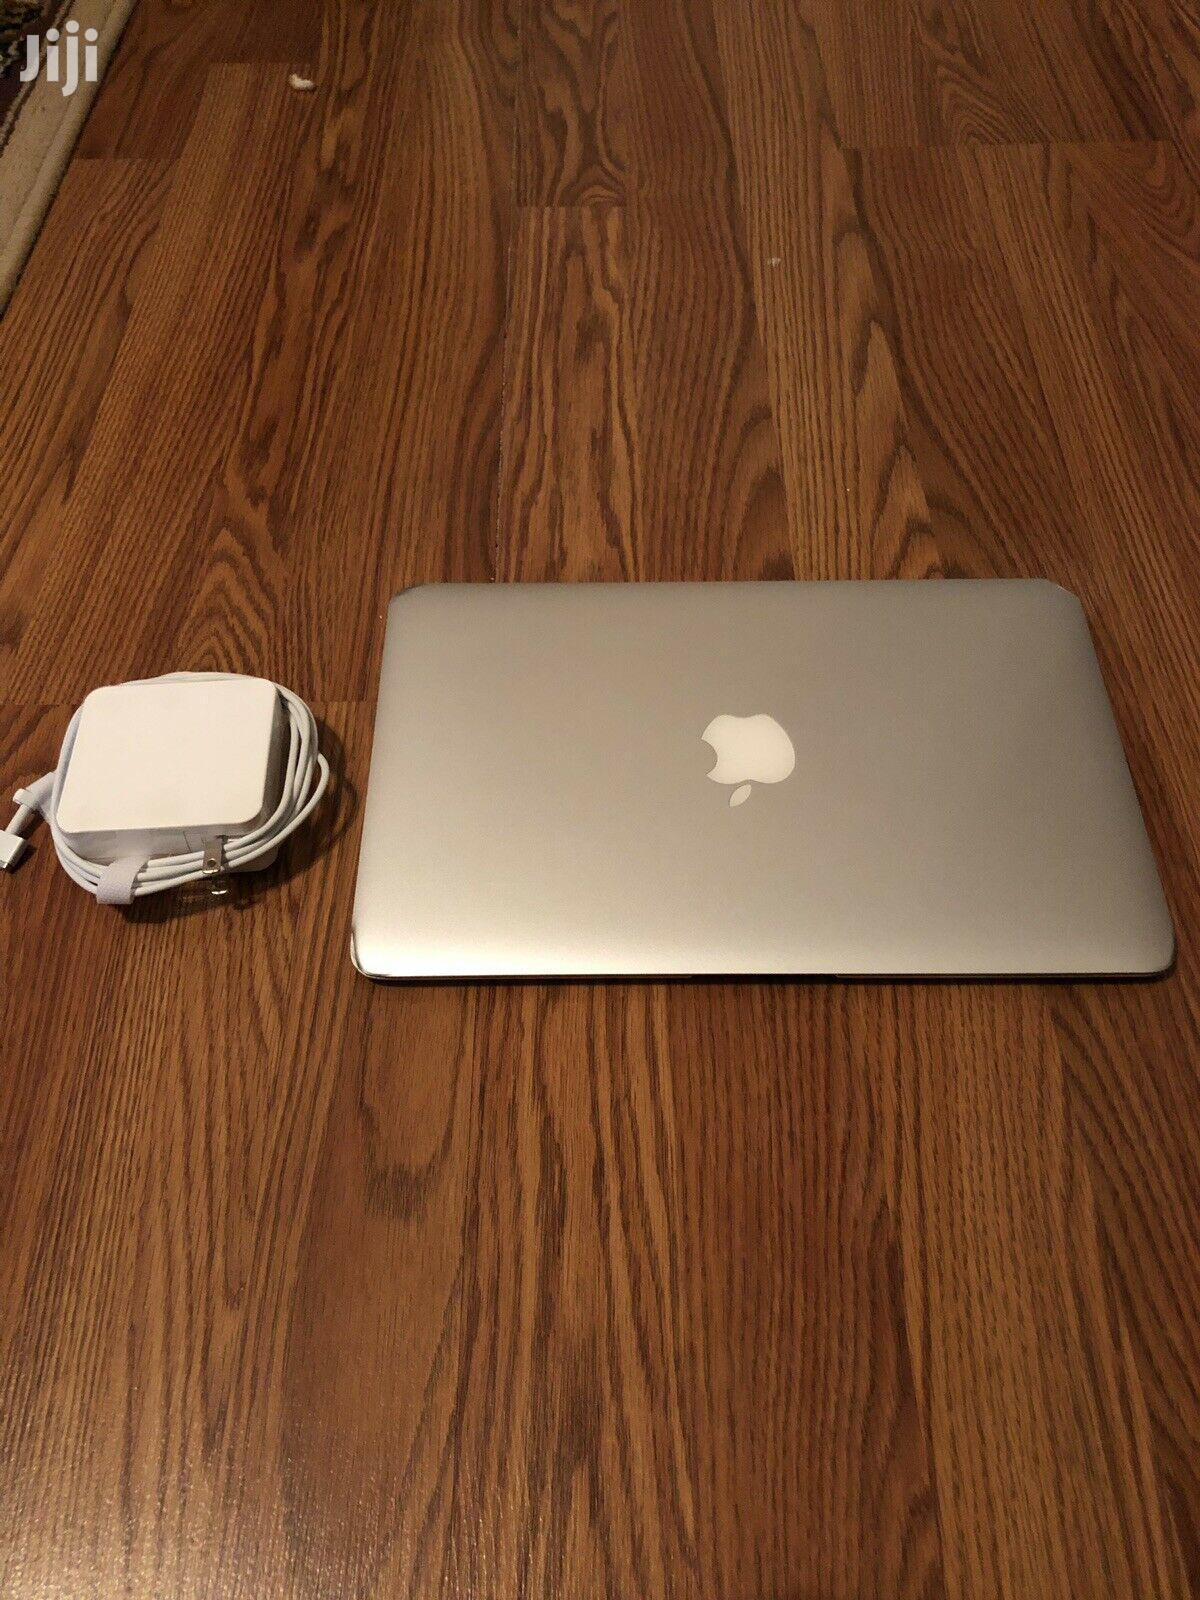 Apple Macbook Air 13 Inches 128gb Ssd Core I5 4gb Ram | Laptops & Computers for sale in Achimota, Greater Accra, Ghana